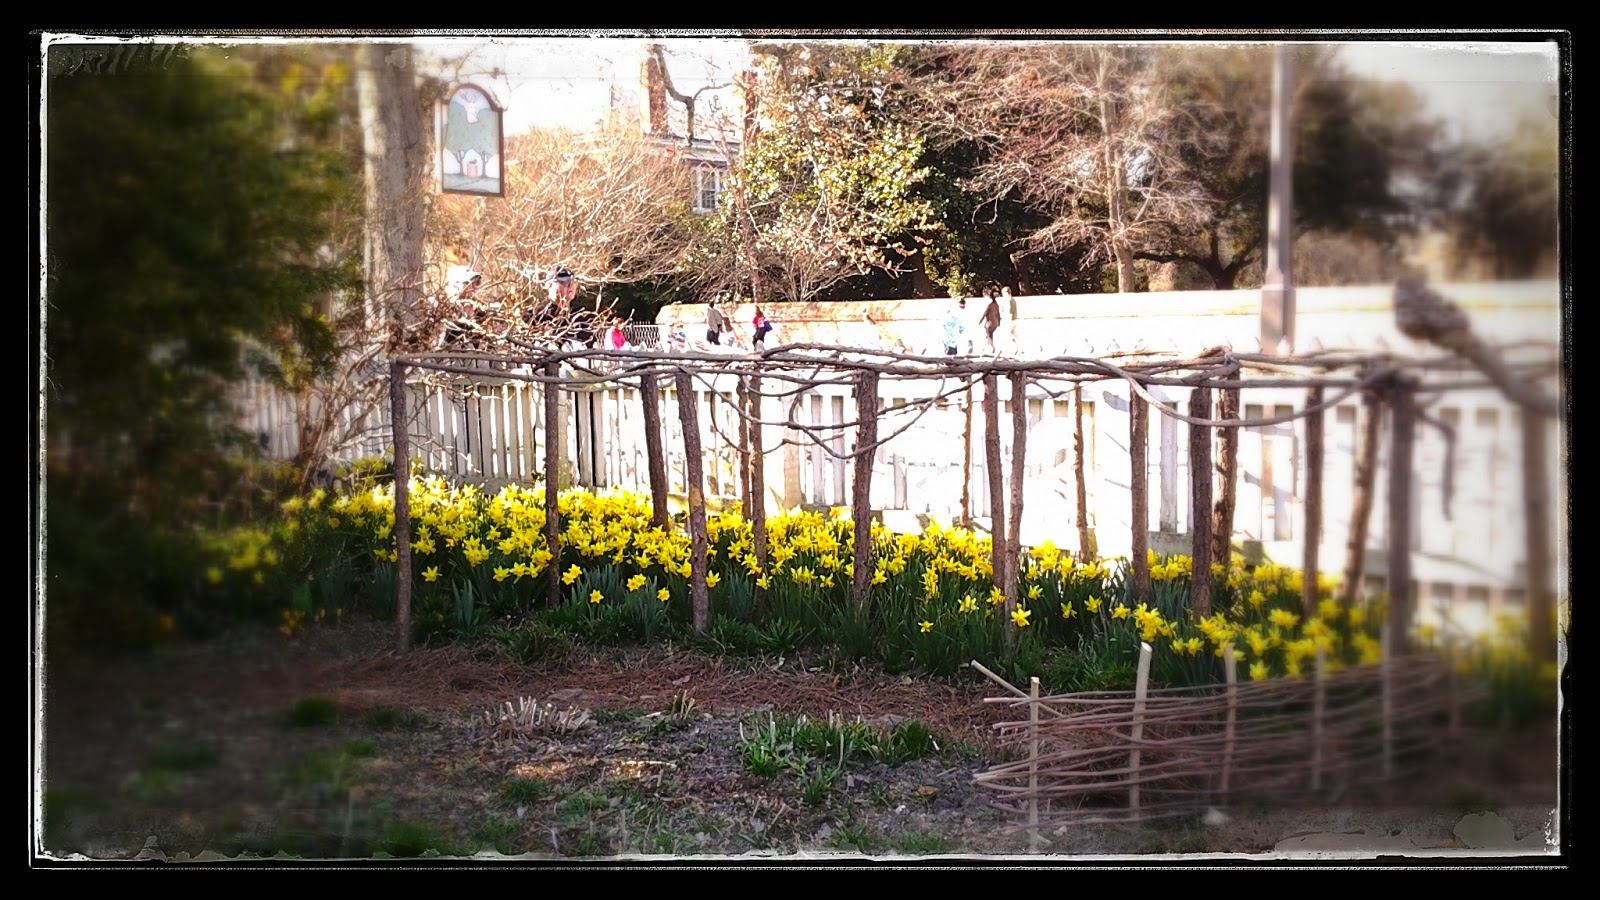 daffodils in Colonial Williamsburg via foobella.blogspot.com